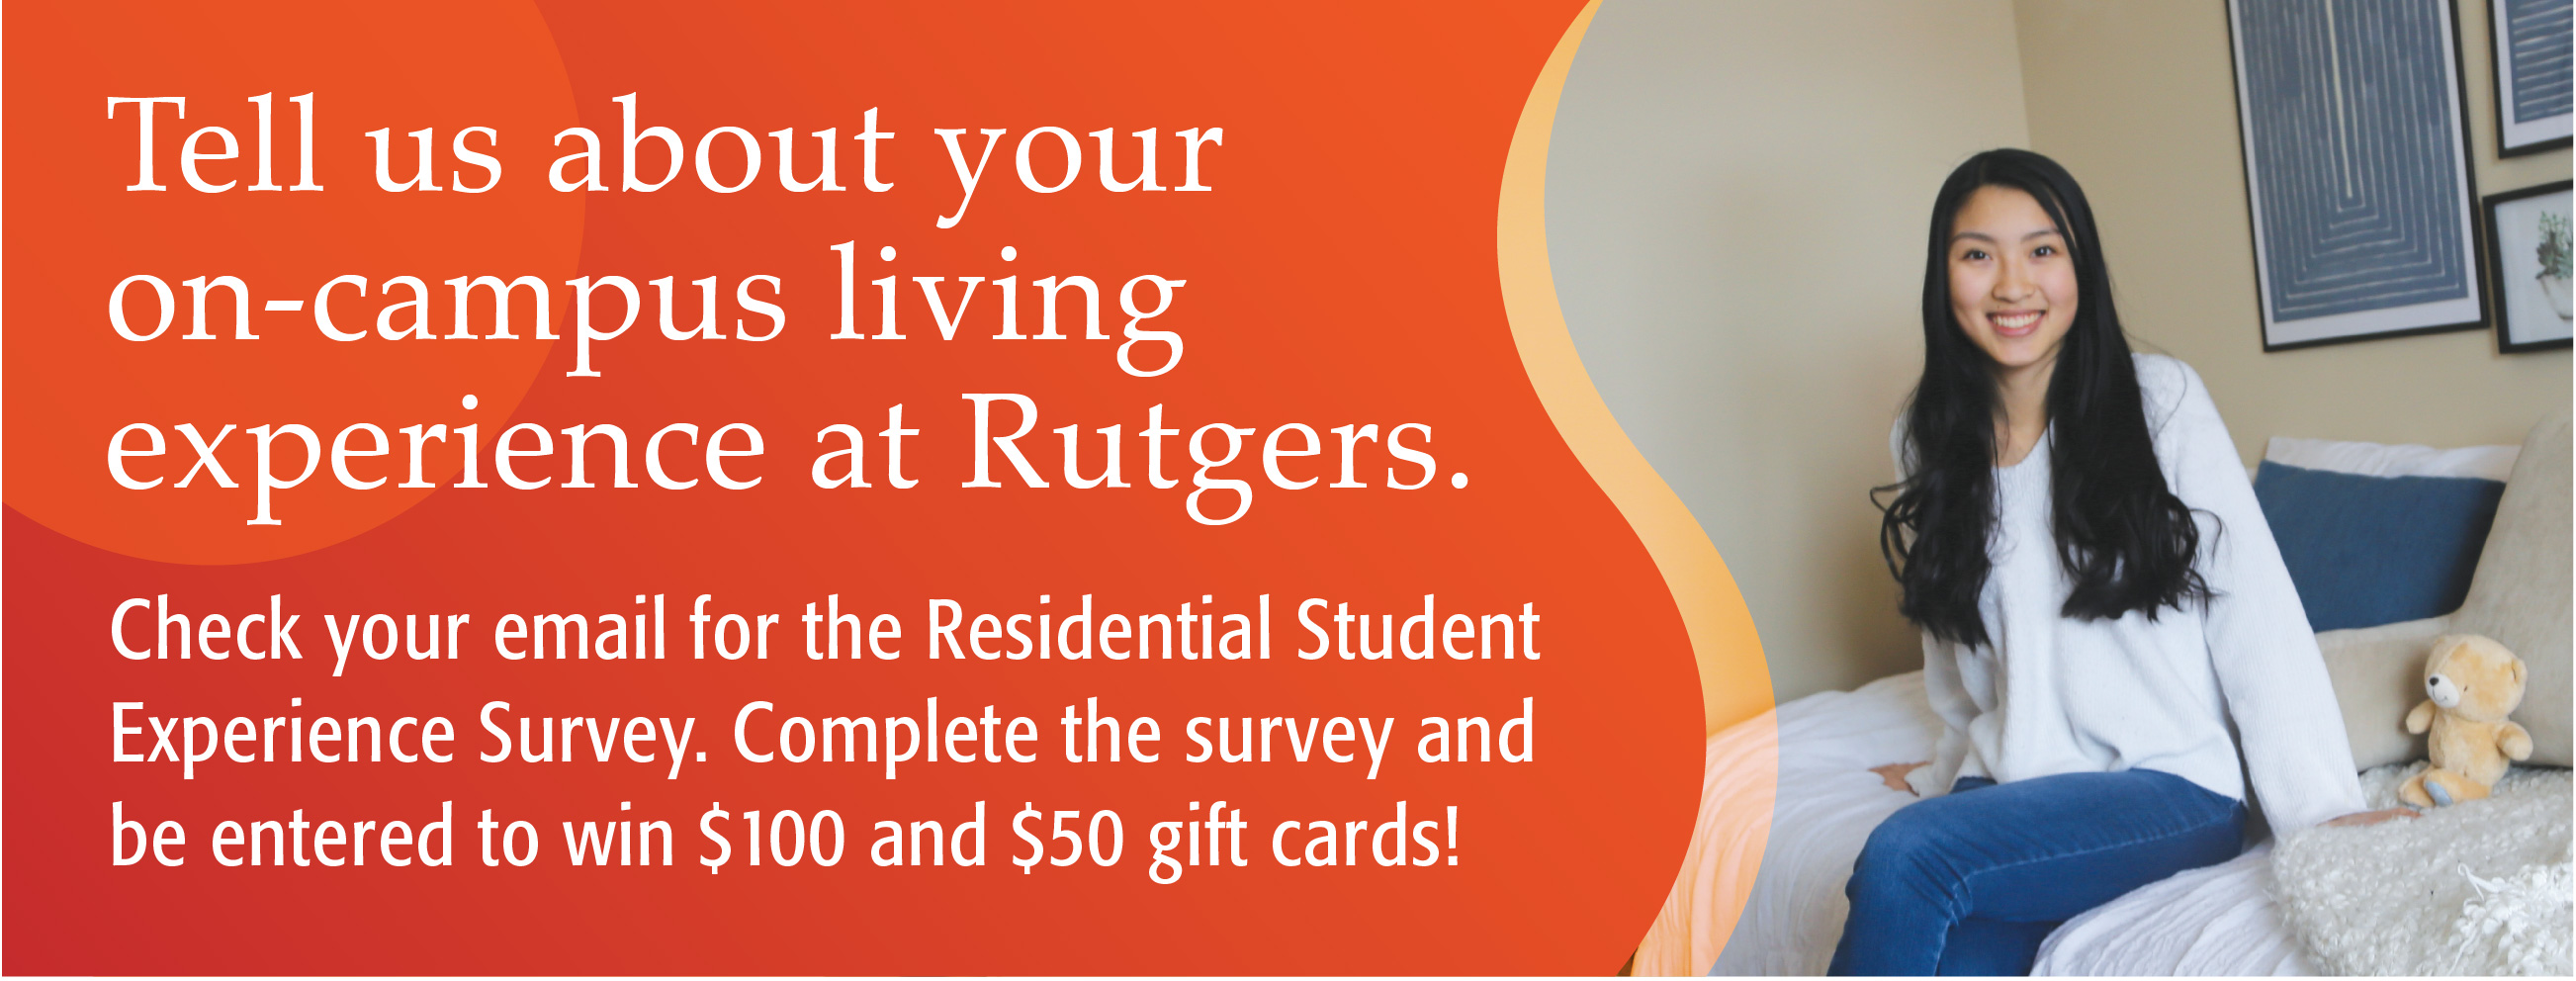 Tell us about your on-campus living experience at Rutgers. Check your email for the Residential Experience Survey. Complete the survey and be entered to win $100 and $50 gift cards!